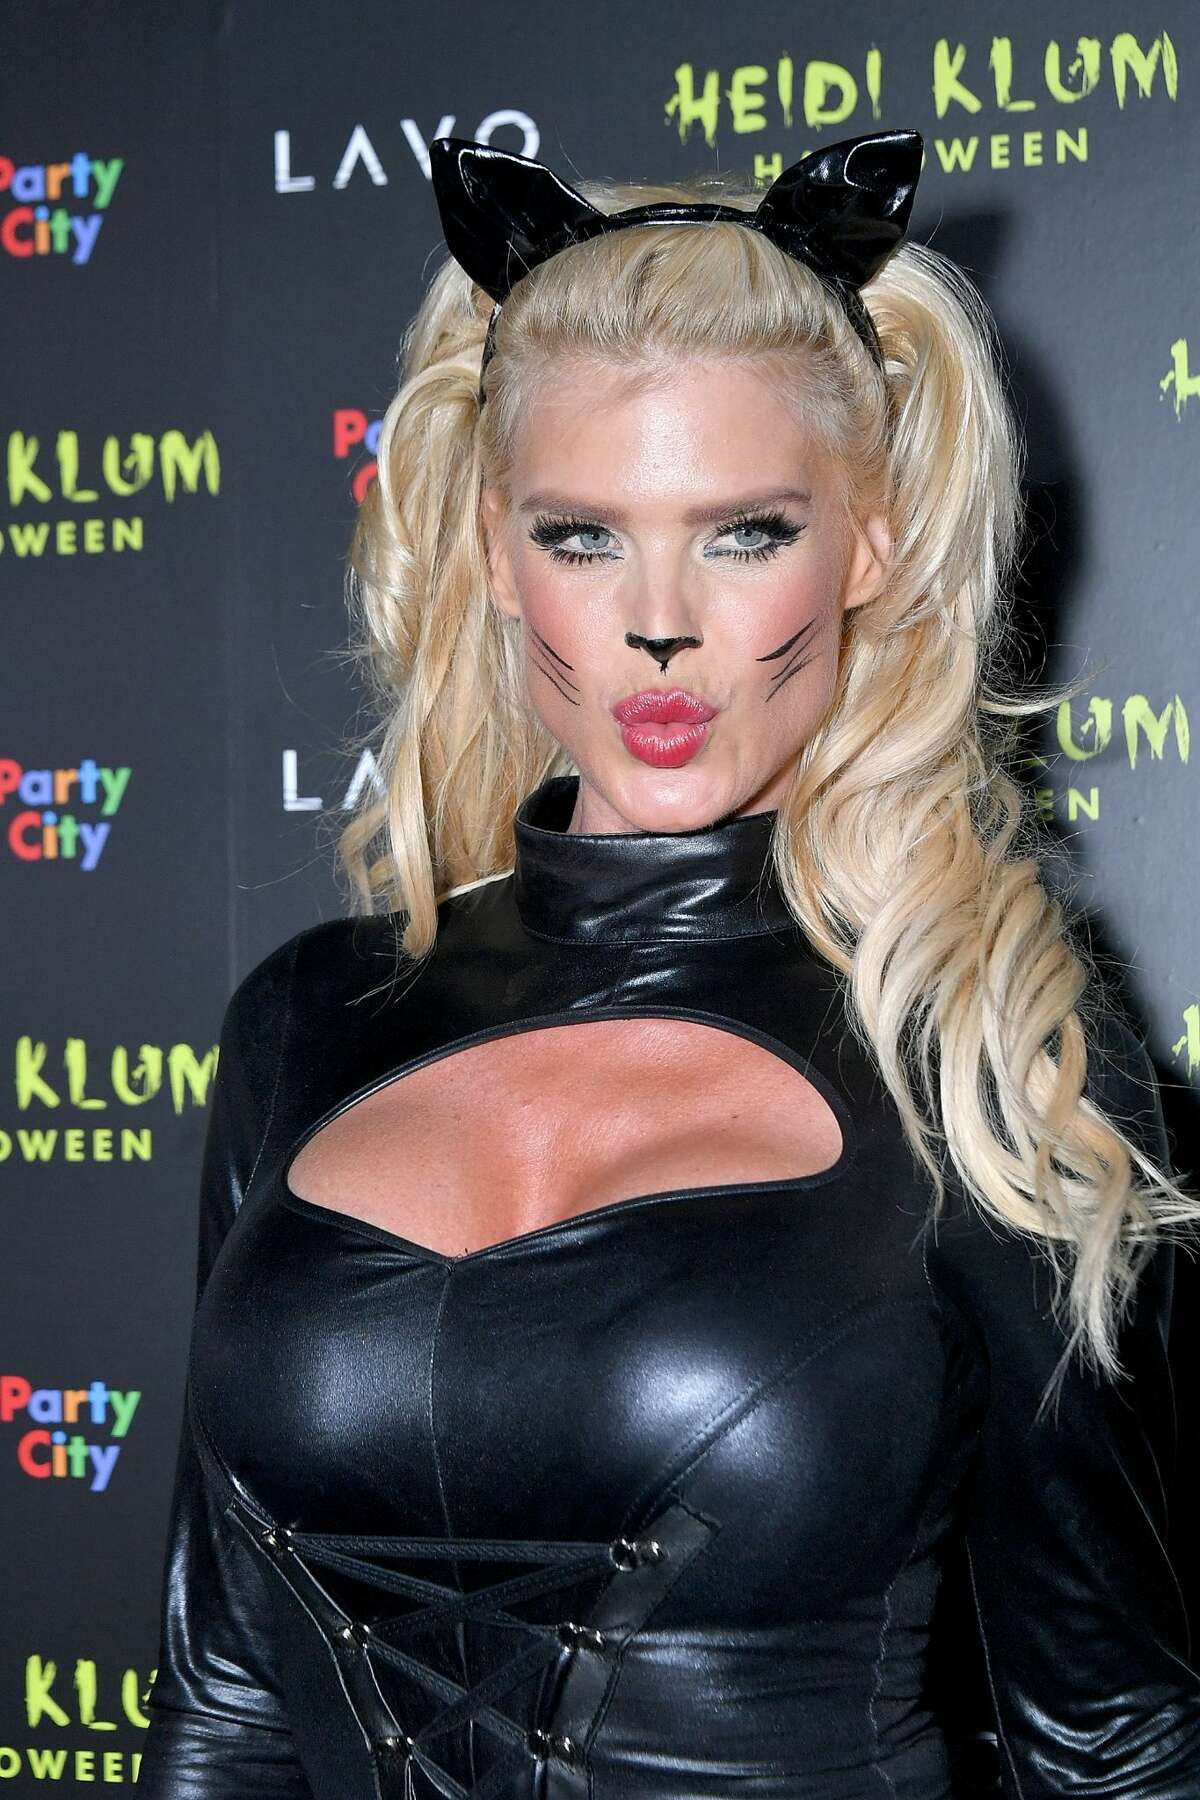 Model Victoria Silvstedt attends Klum's 19th Annual Halloween Party at Lavo on October 31, 2018 in New York City. (Photo by Michael Loccisano/Getty Images)